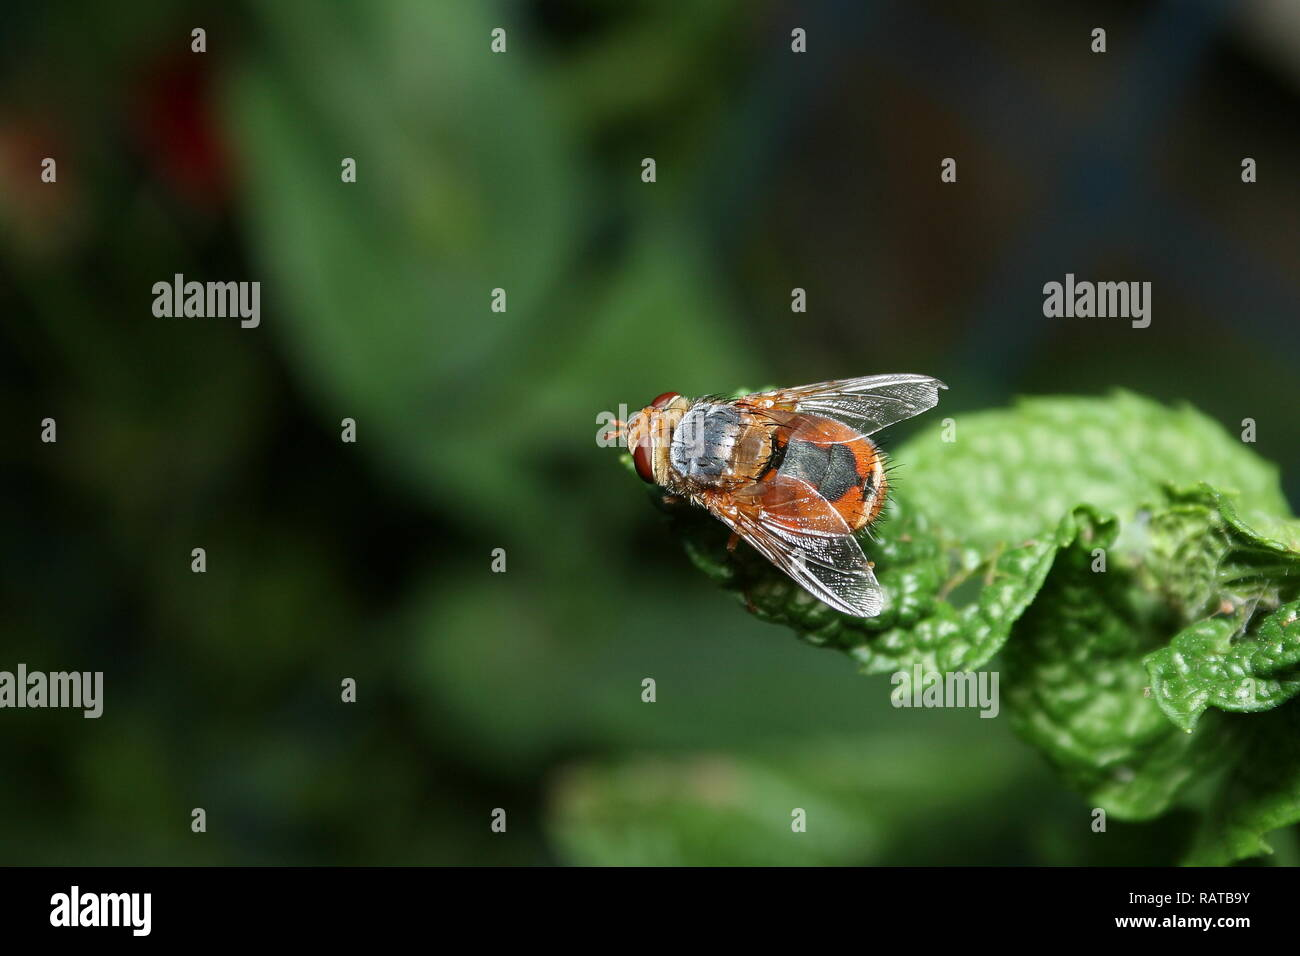 Tachinid Fly perched on a mint leaf Stock Photo